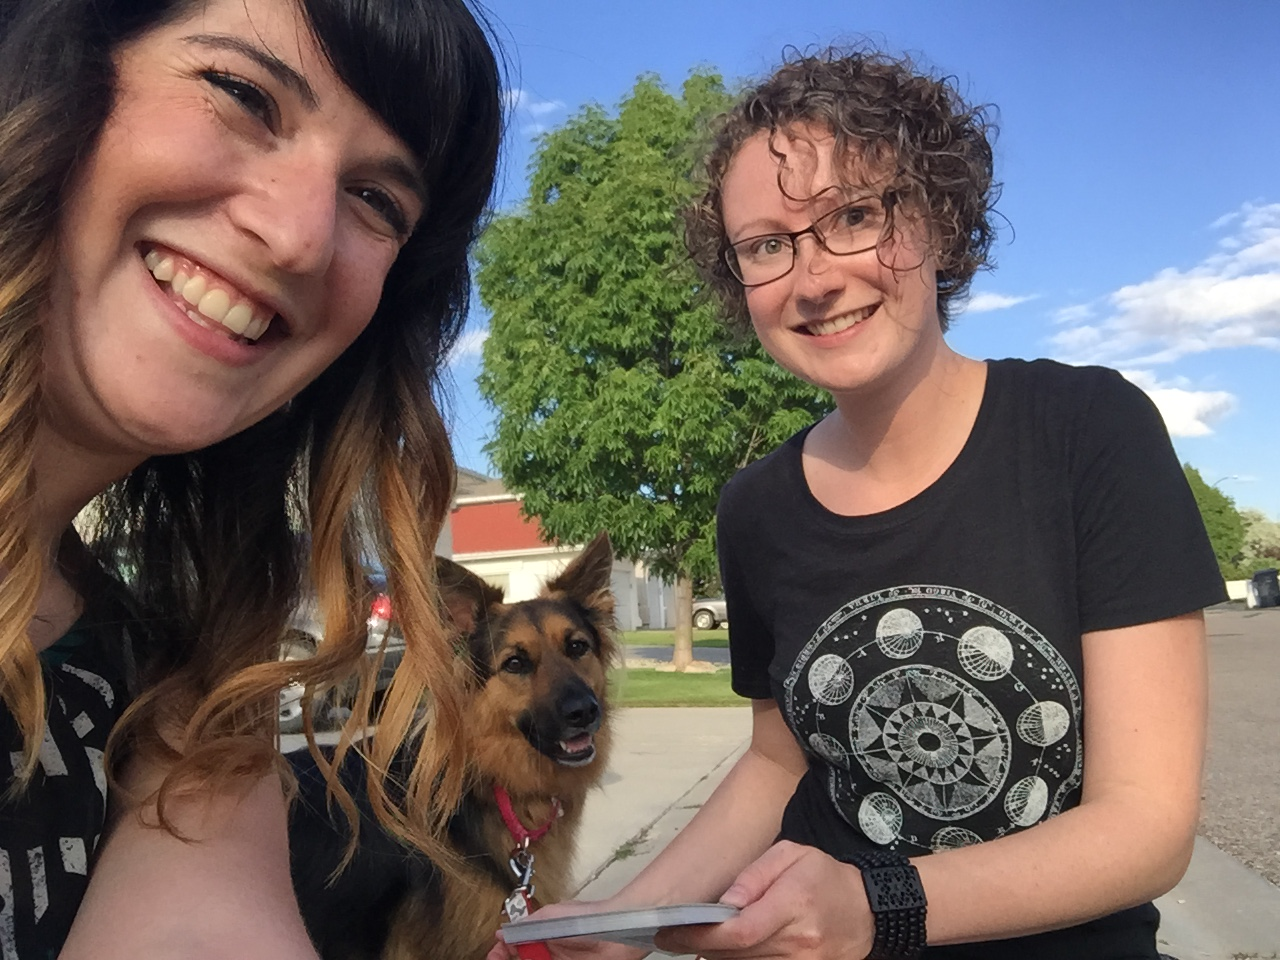 Doorknocking_with_furry_friends.jpeg